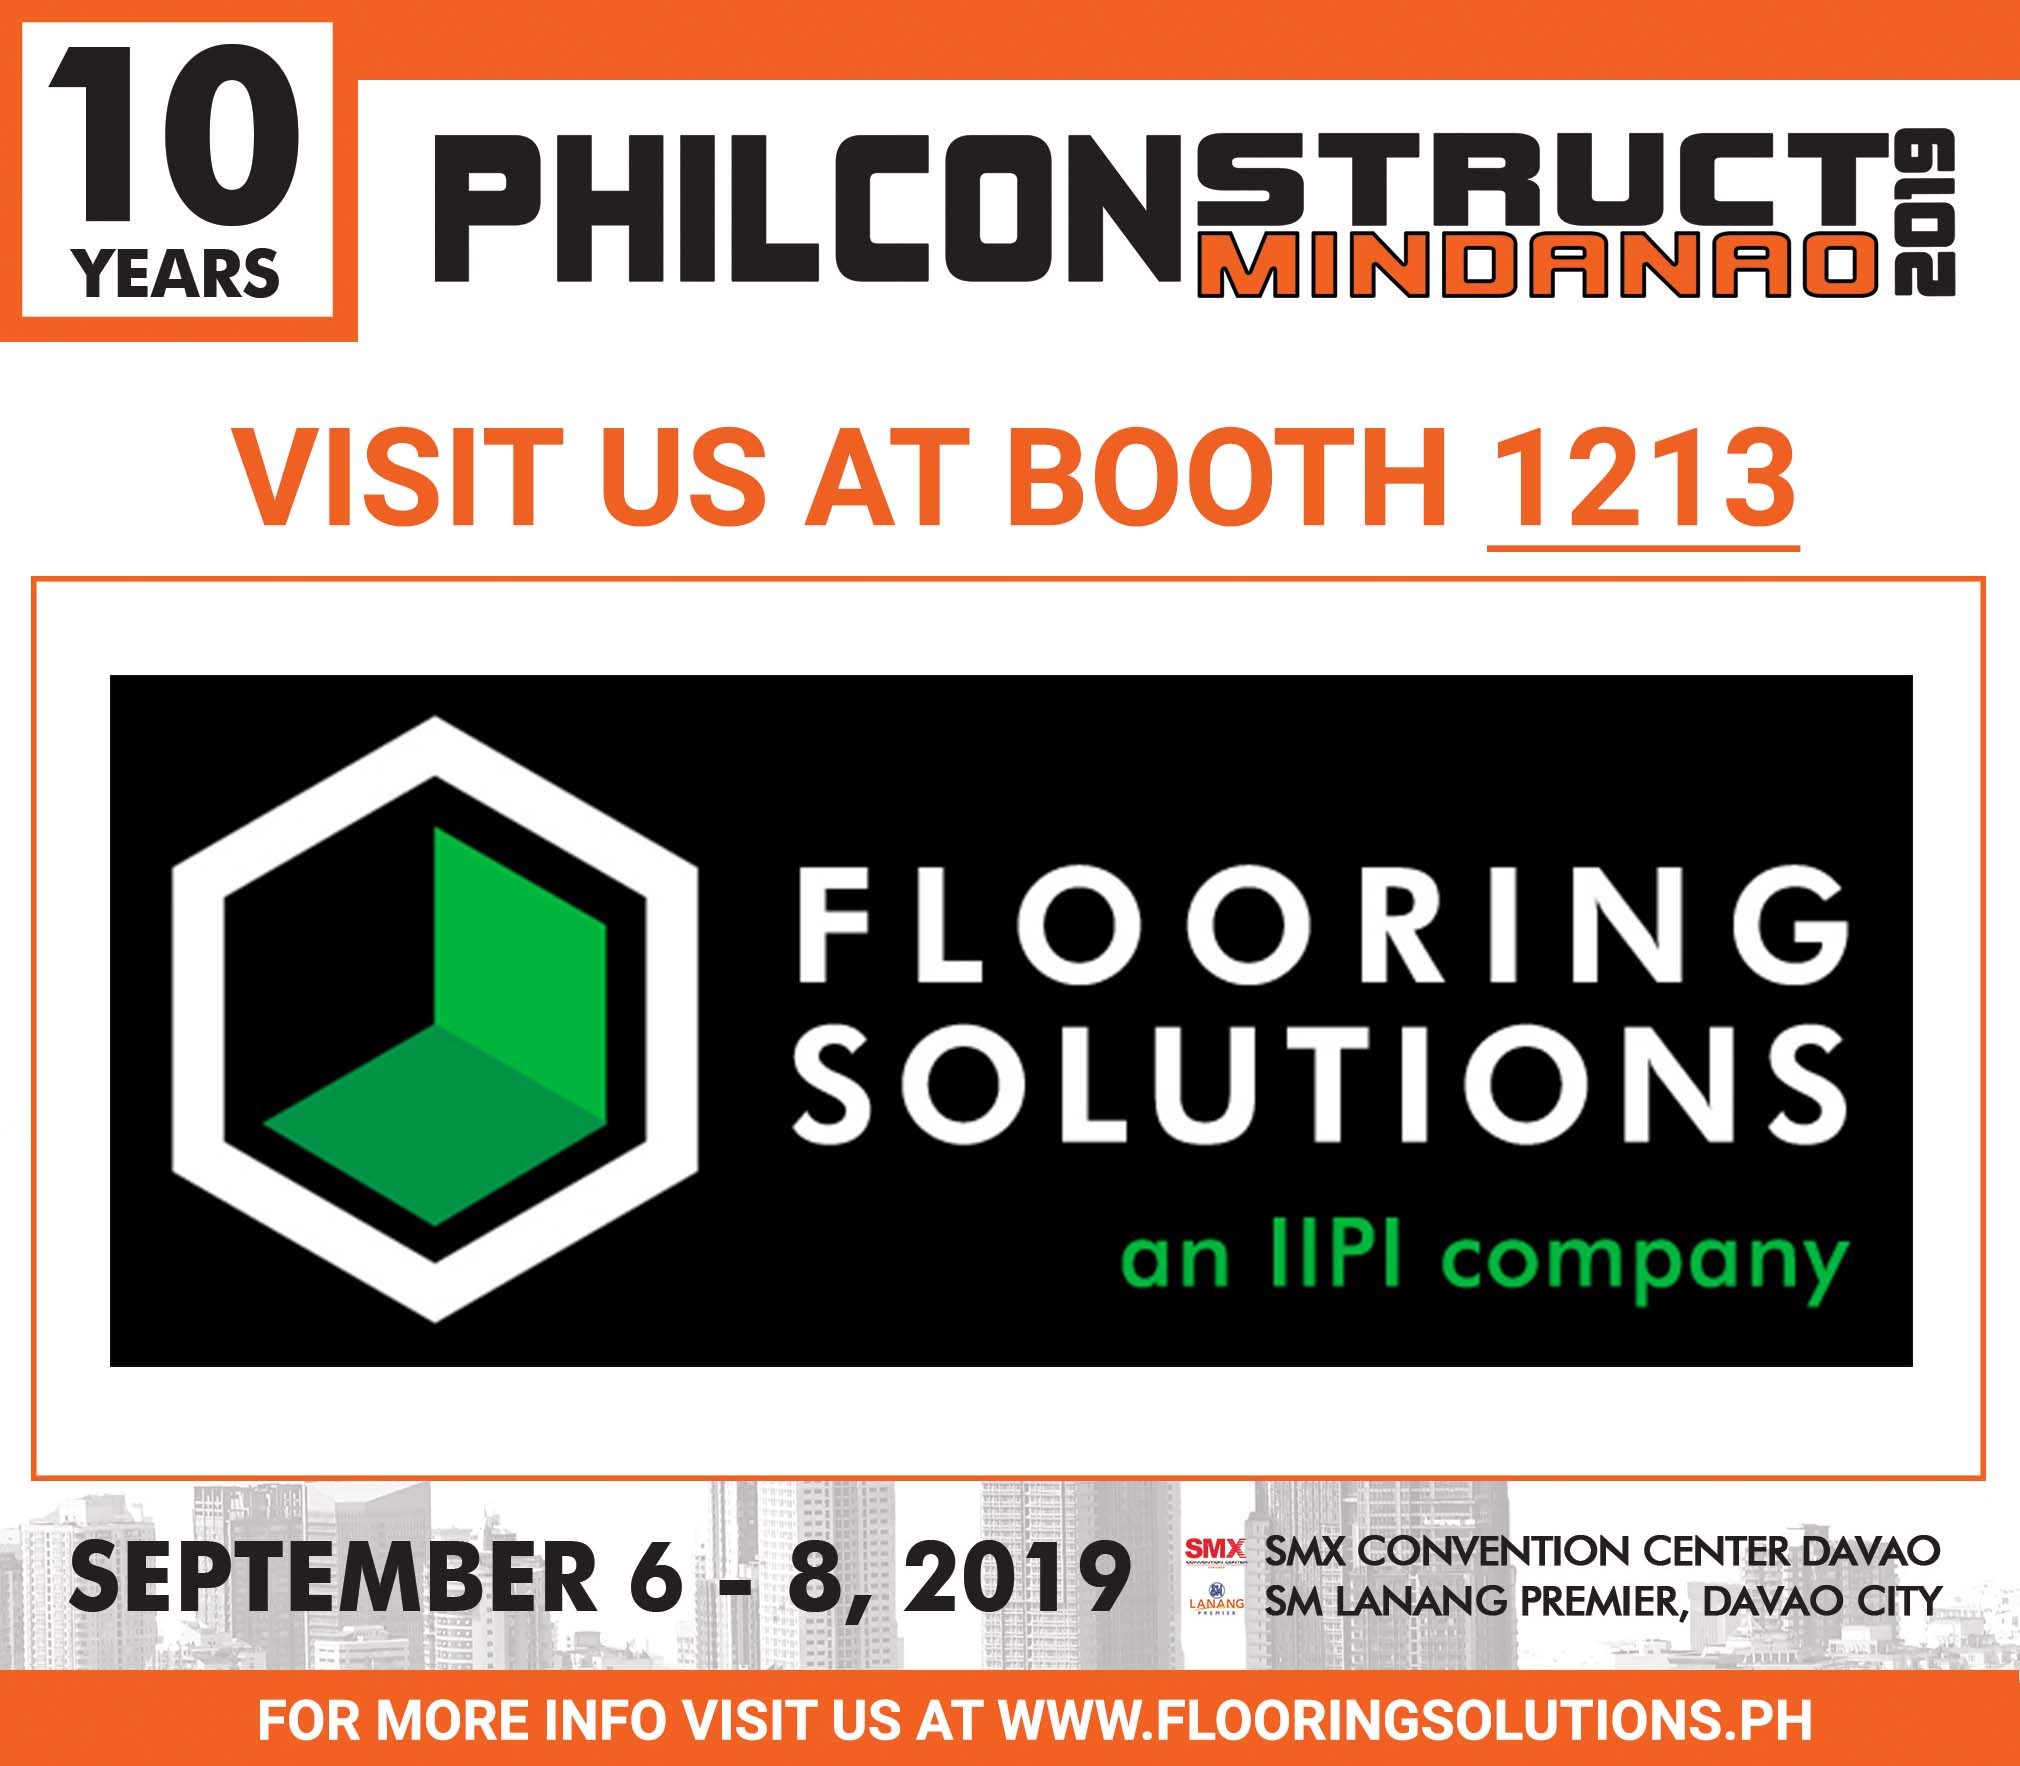 Flooring Solutions Philippines at 10th year anniversary of the PHILCONSTRUCT 2019 in Mindanao